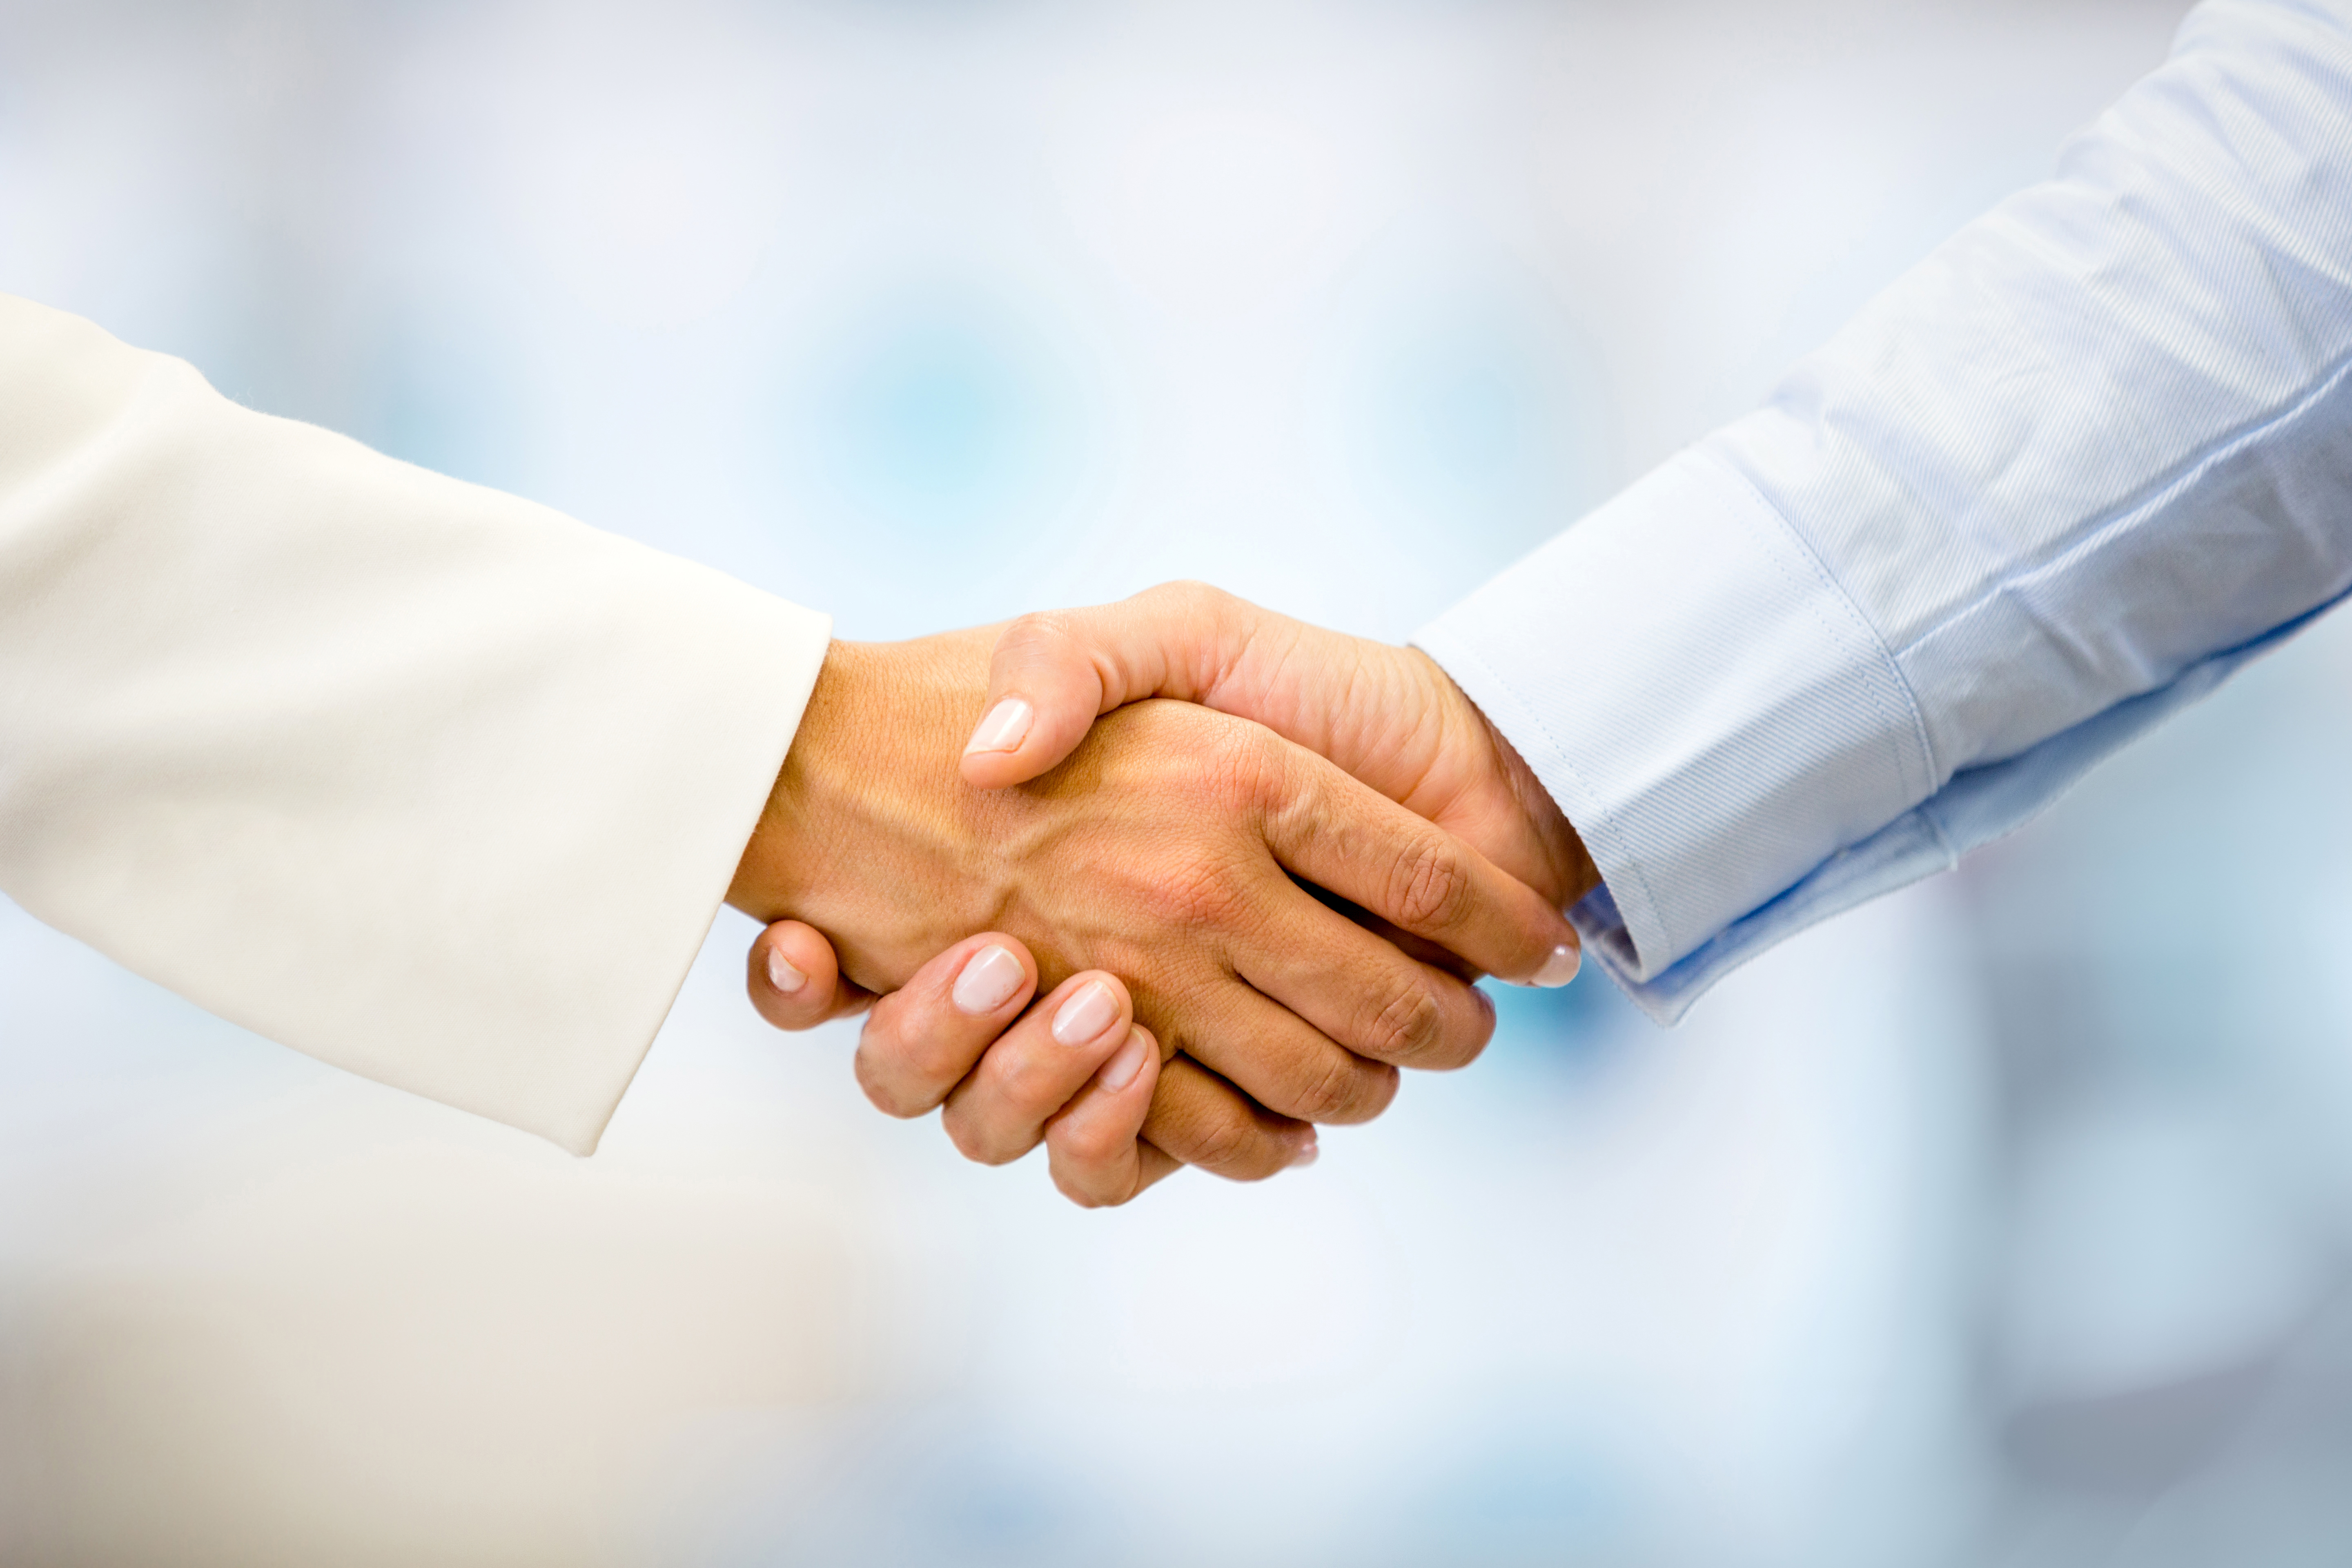 Shaking Hands - Cliparts.co